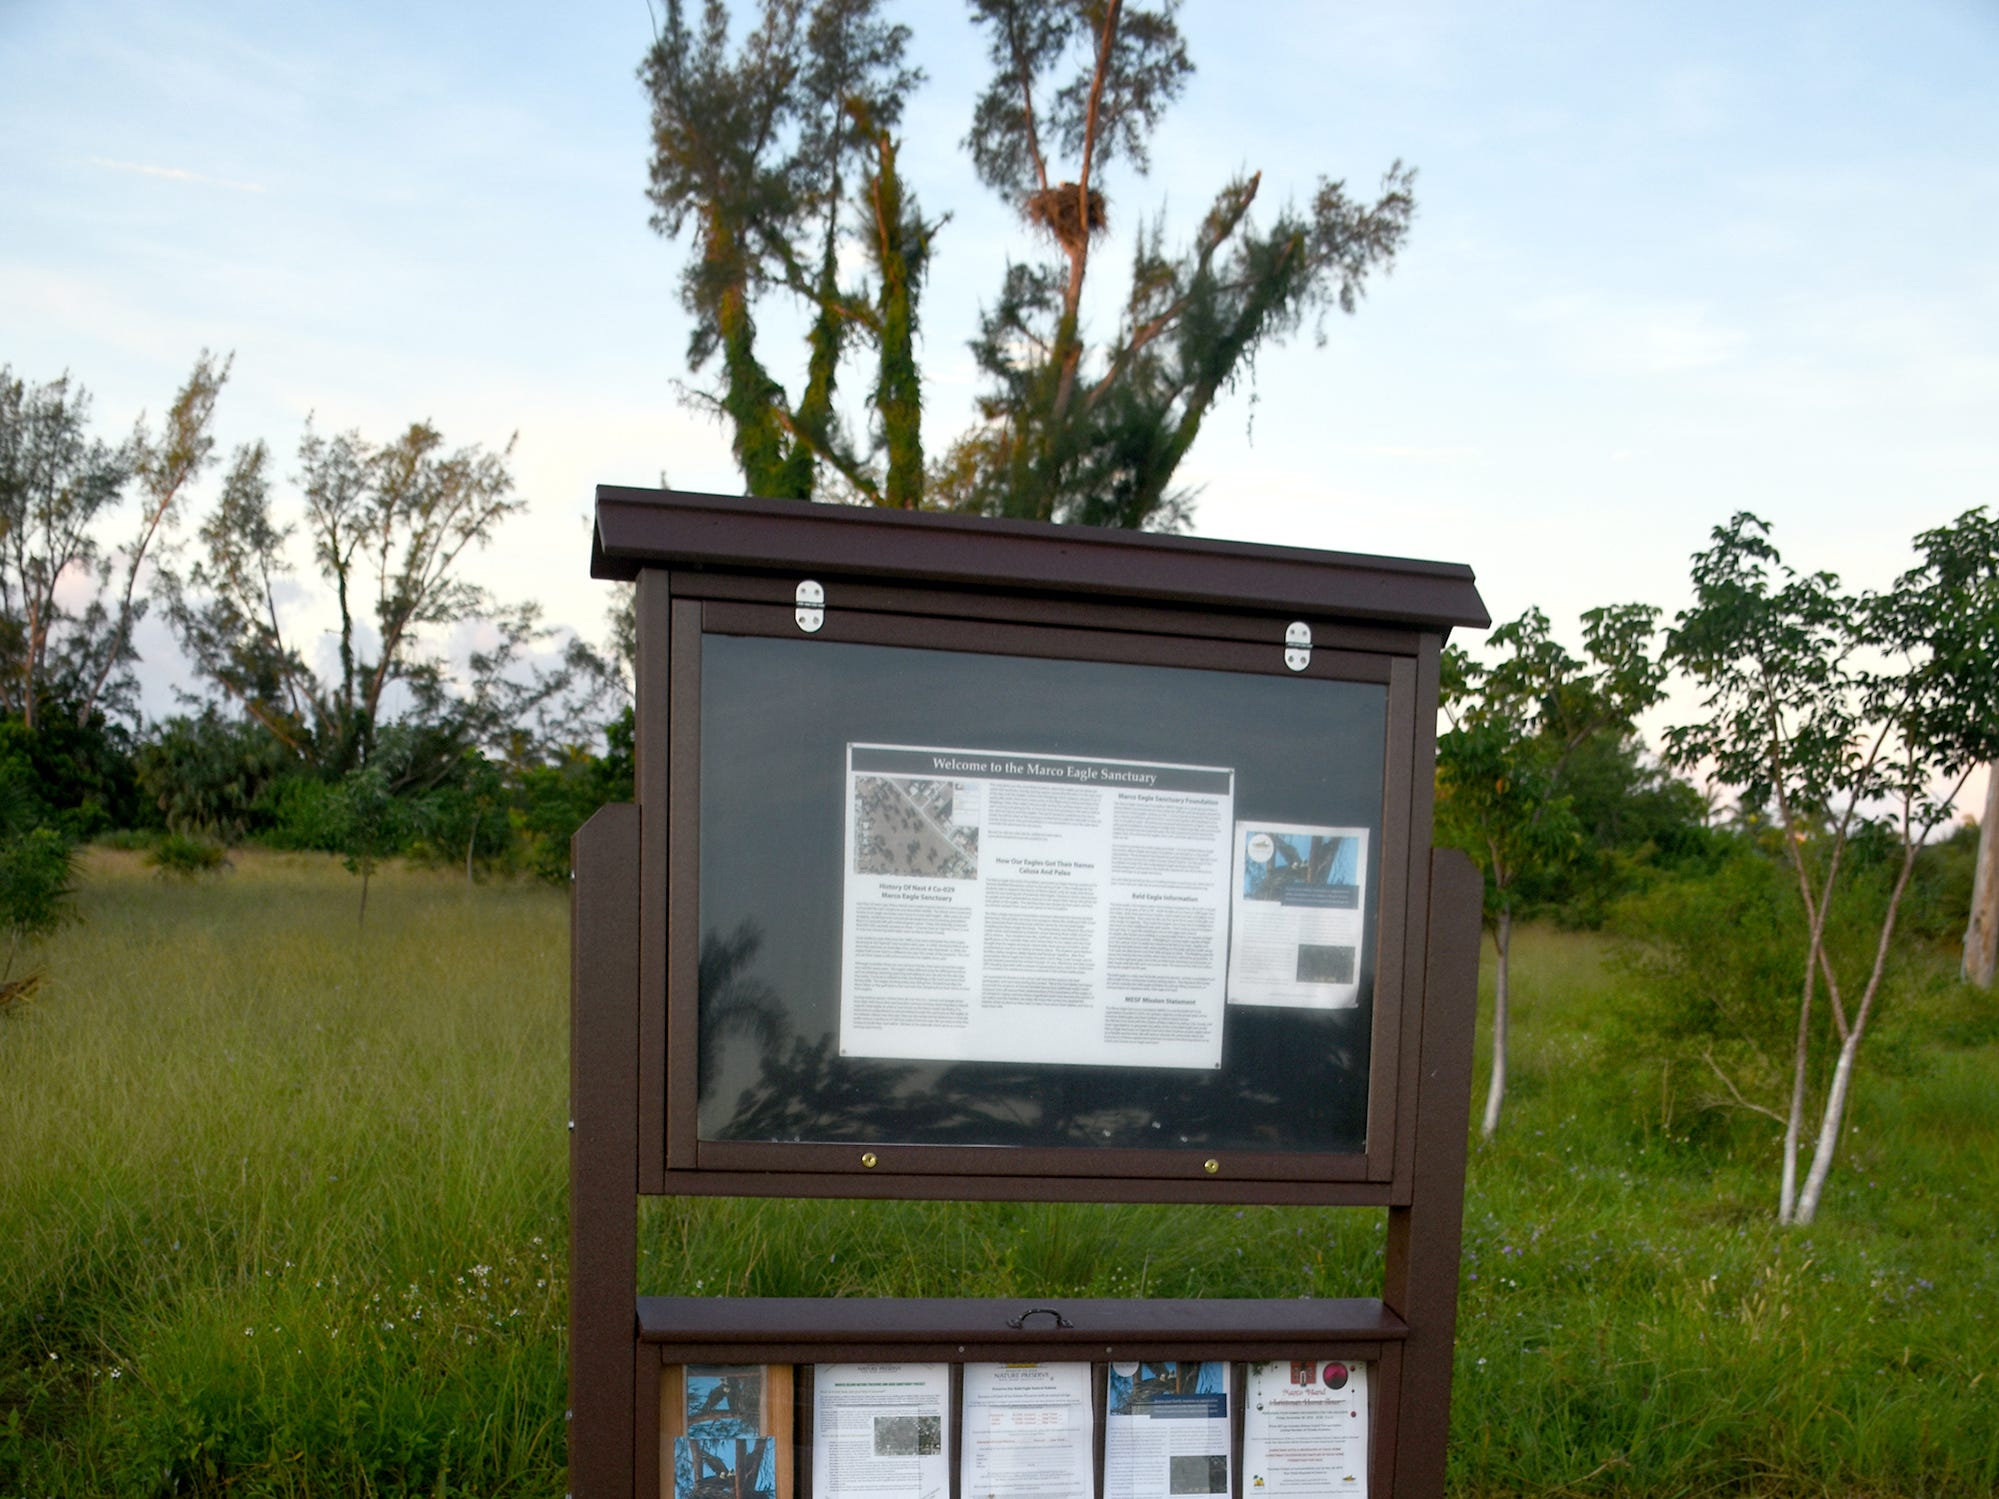 Inscribed pavers to help support the project are for sale. The Eagle Cam at the Marco Island Nature Preserve and Bird Sanctuary is live, just in time to watch a pair of eagles renovating the treetop nest.